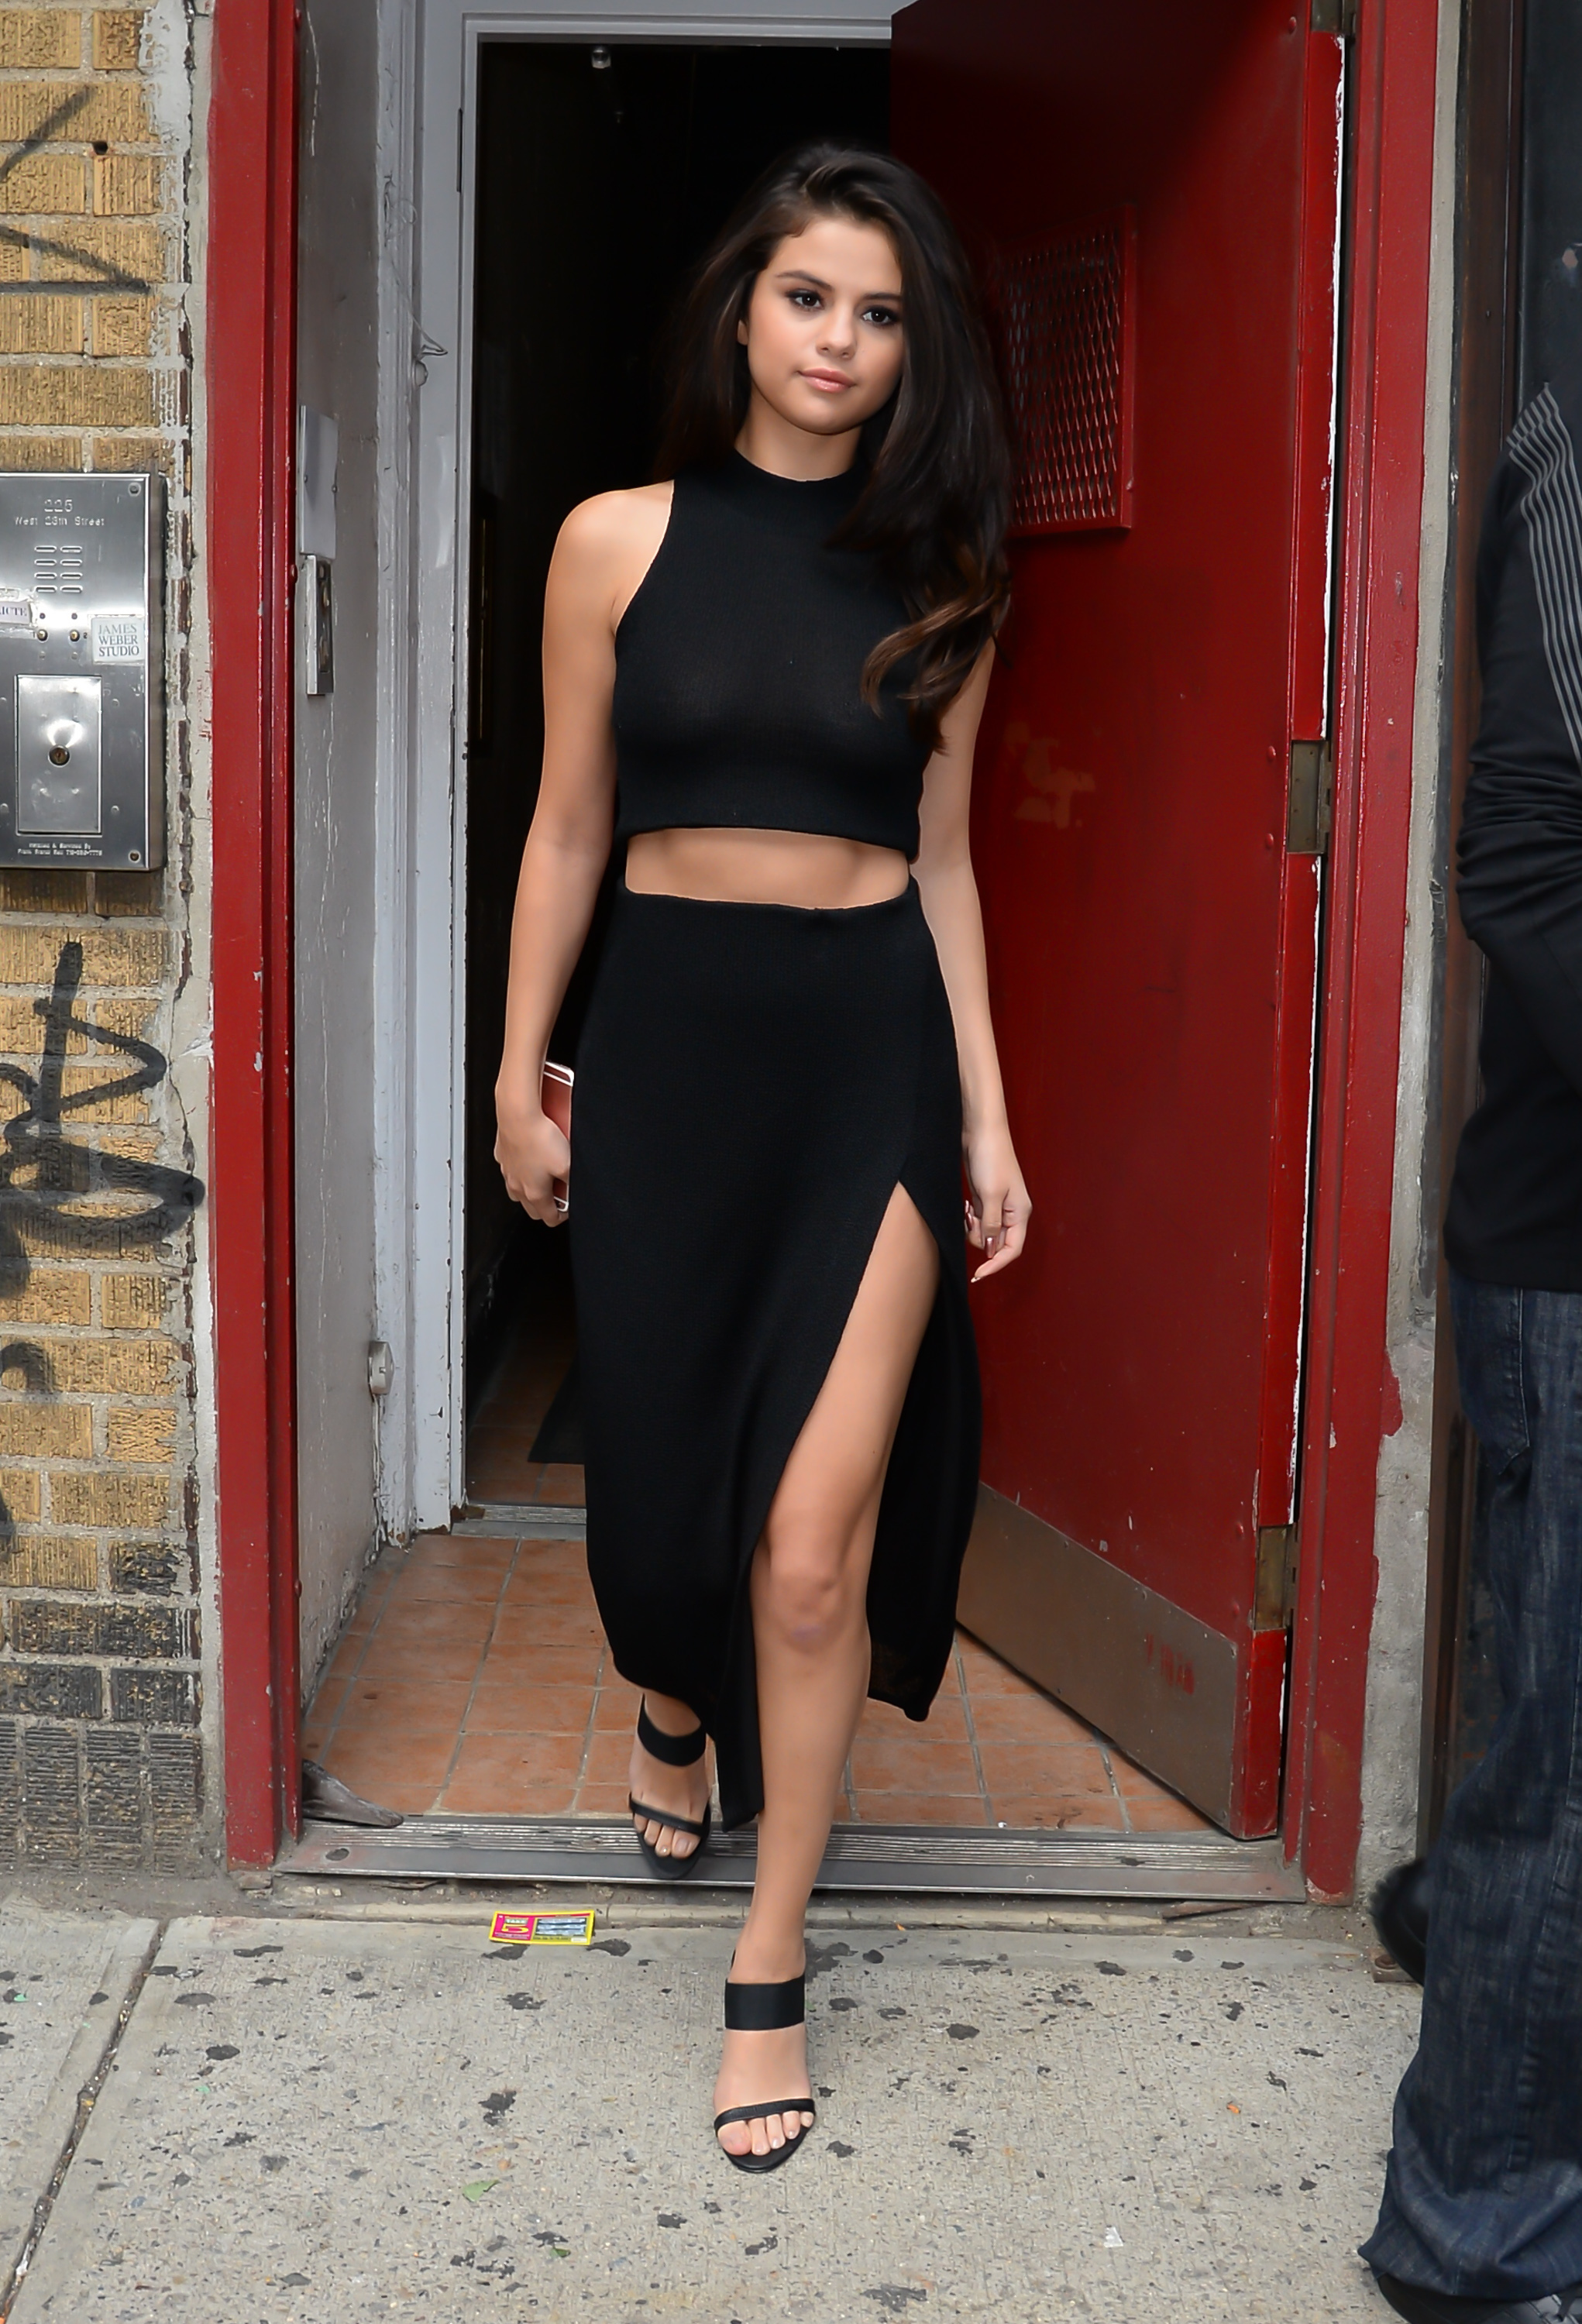 Selena Gomez Style Pictures - Fashion Photos of Selena Gomez